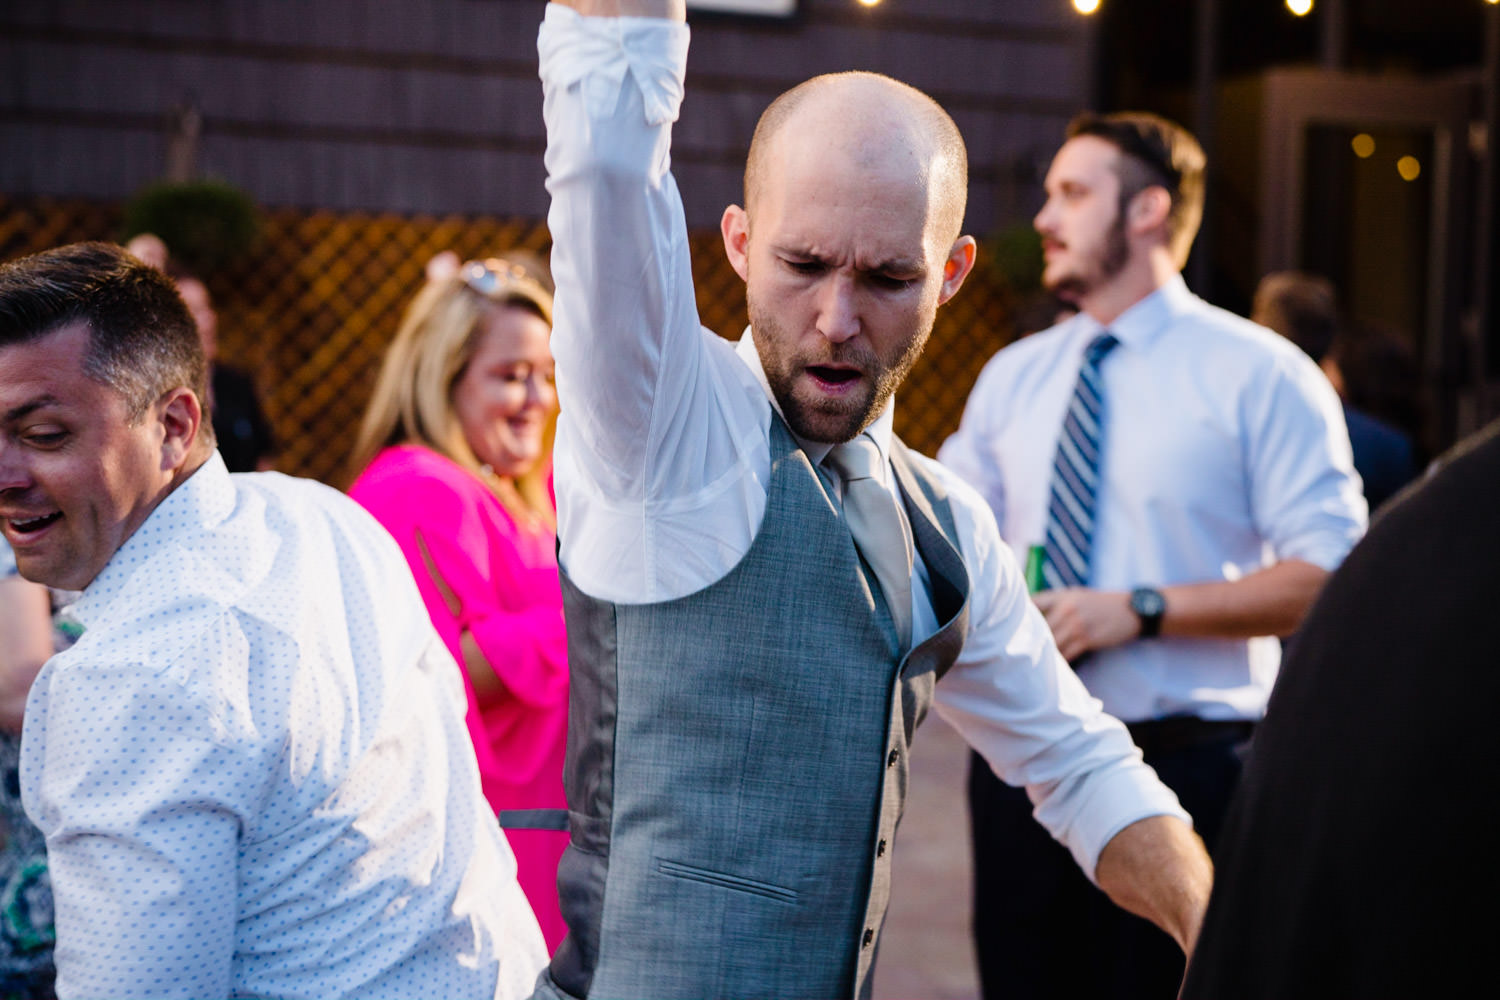 Alta Lodge wedding groom dancing with guest photo